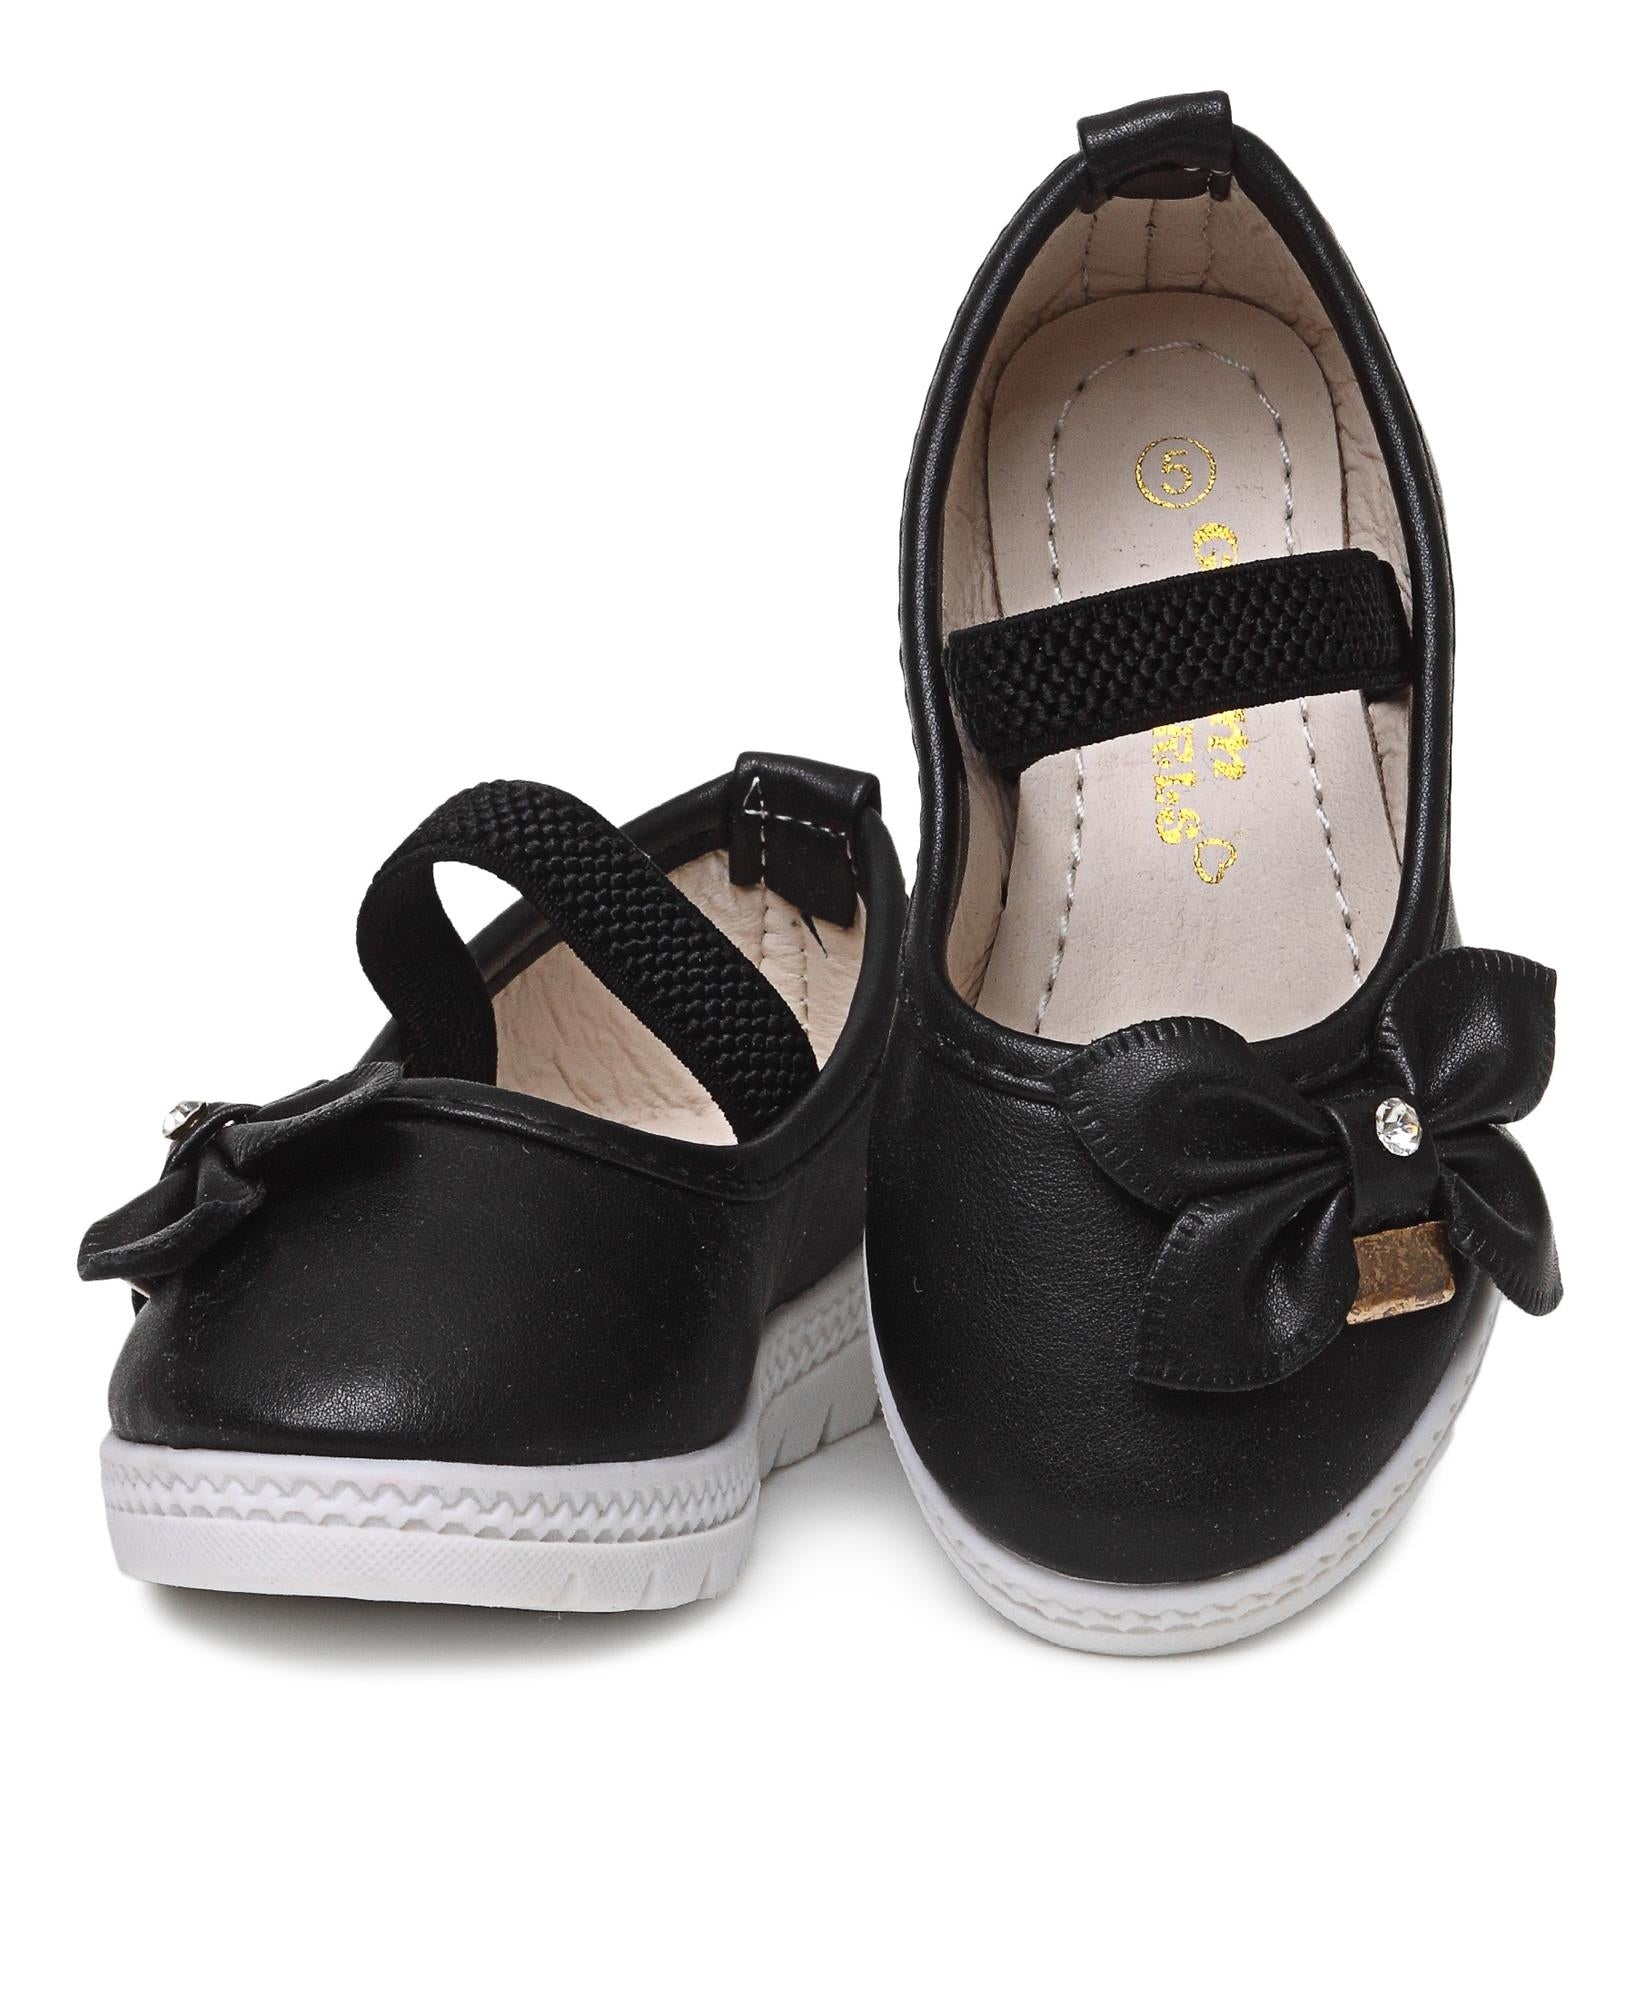 Infants Pumps - Black